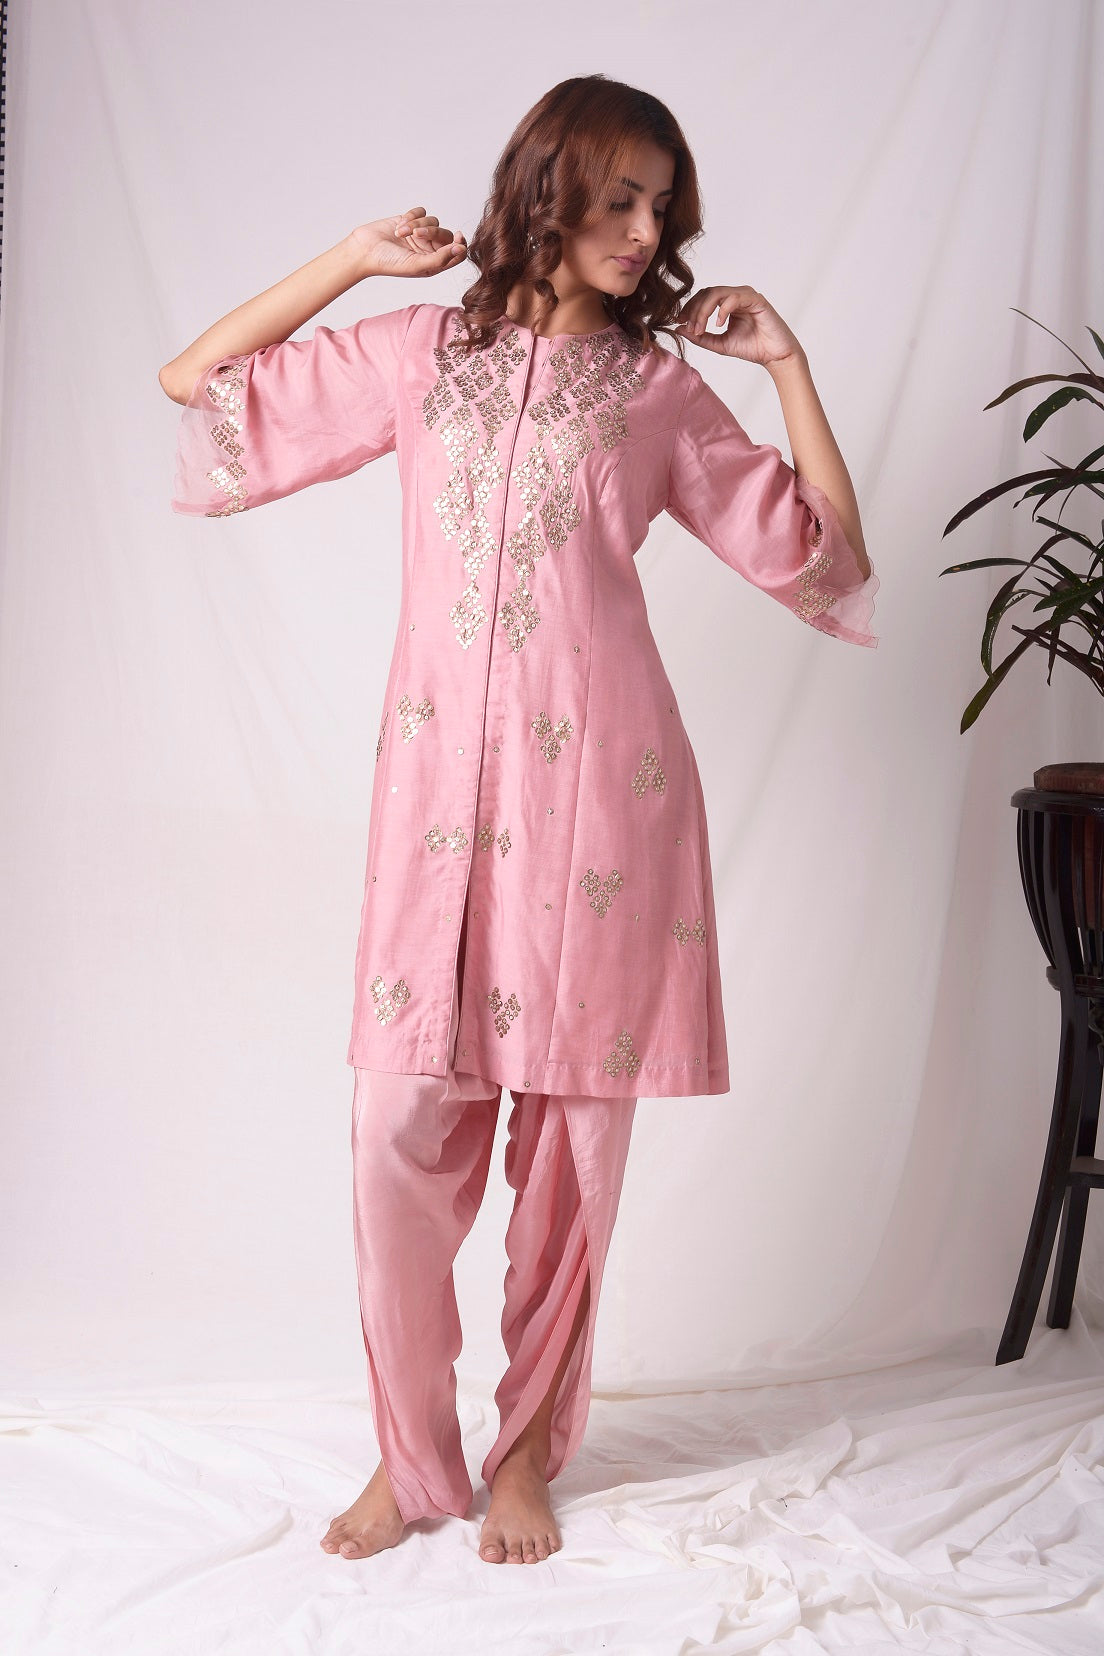 Dusty Pink Chanderi Suit With Dhoti Online in USA-full view-5